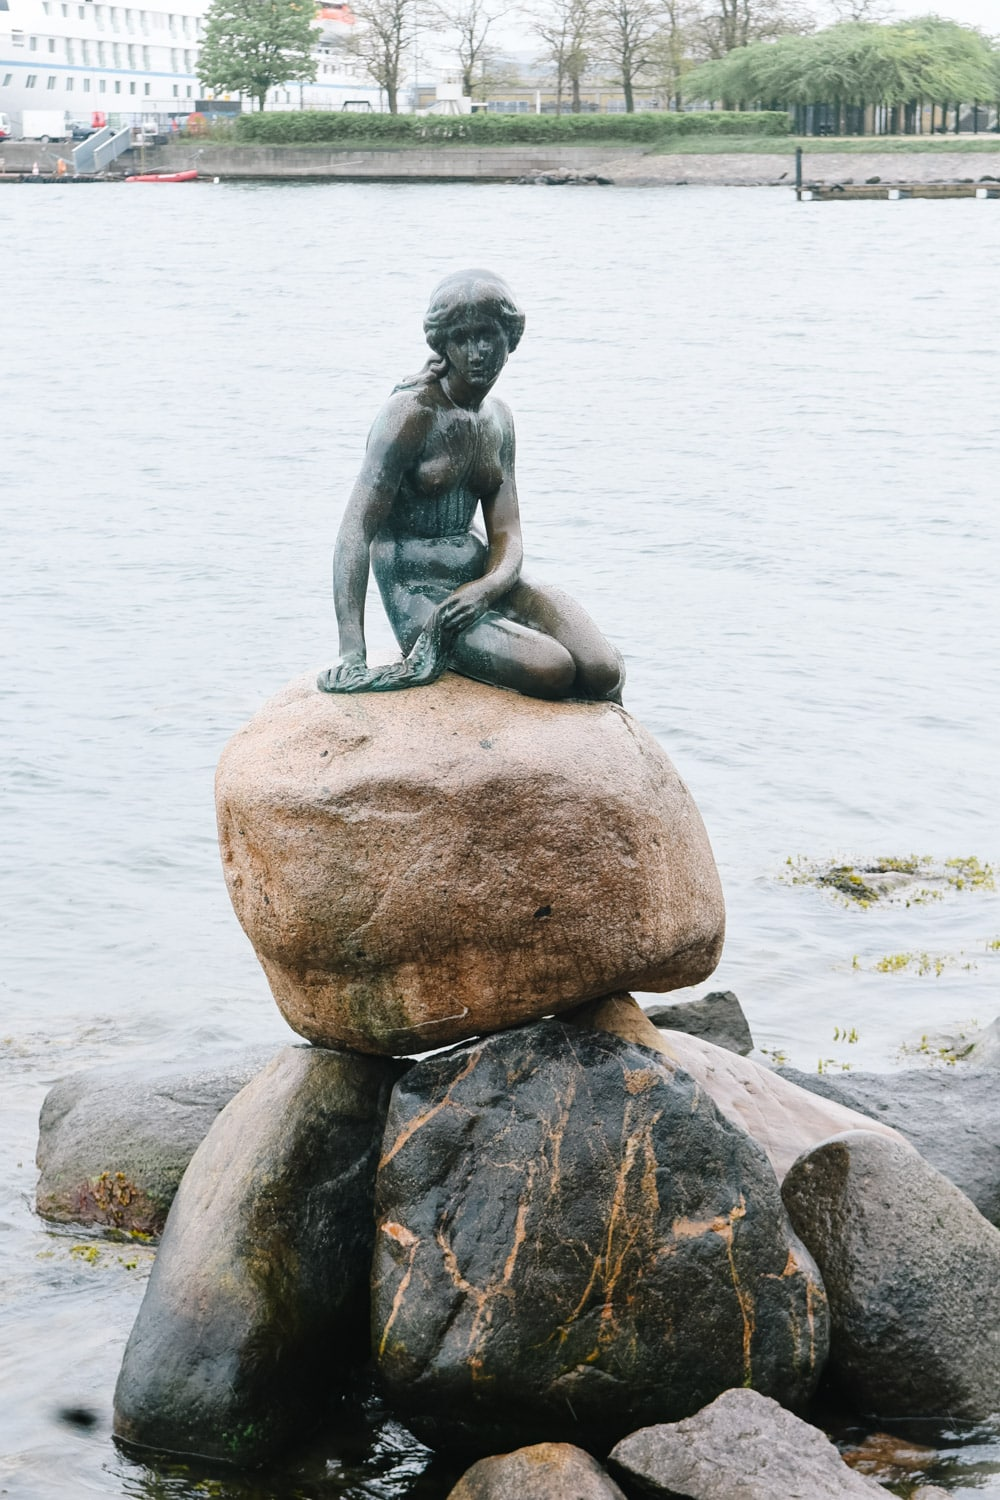 Little Mermaid Statue in Copenhagen Denmark